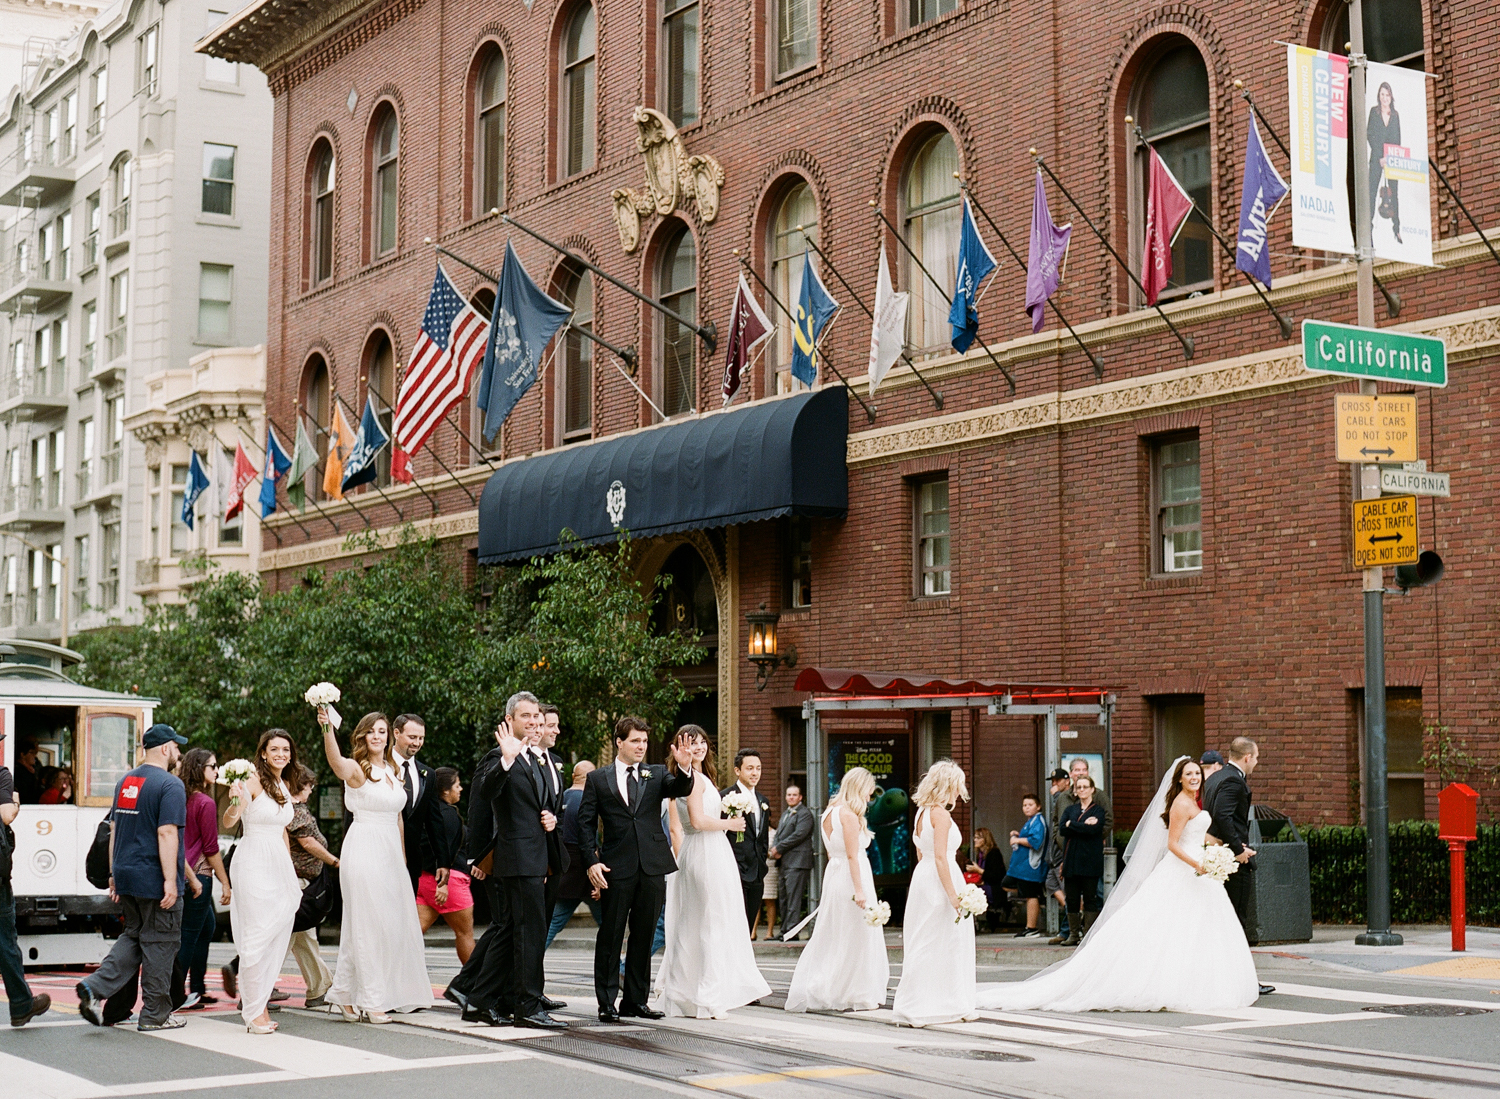 The bridal party waves to the camera as they cross a San Francisco street with passerby; photo by Sylvie Gil